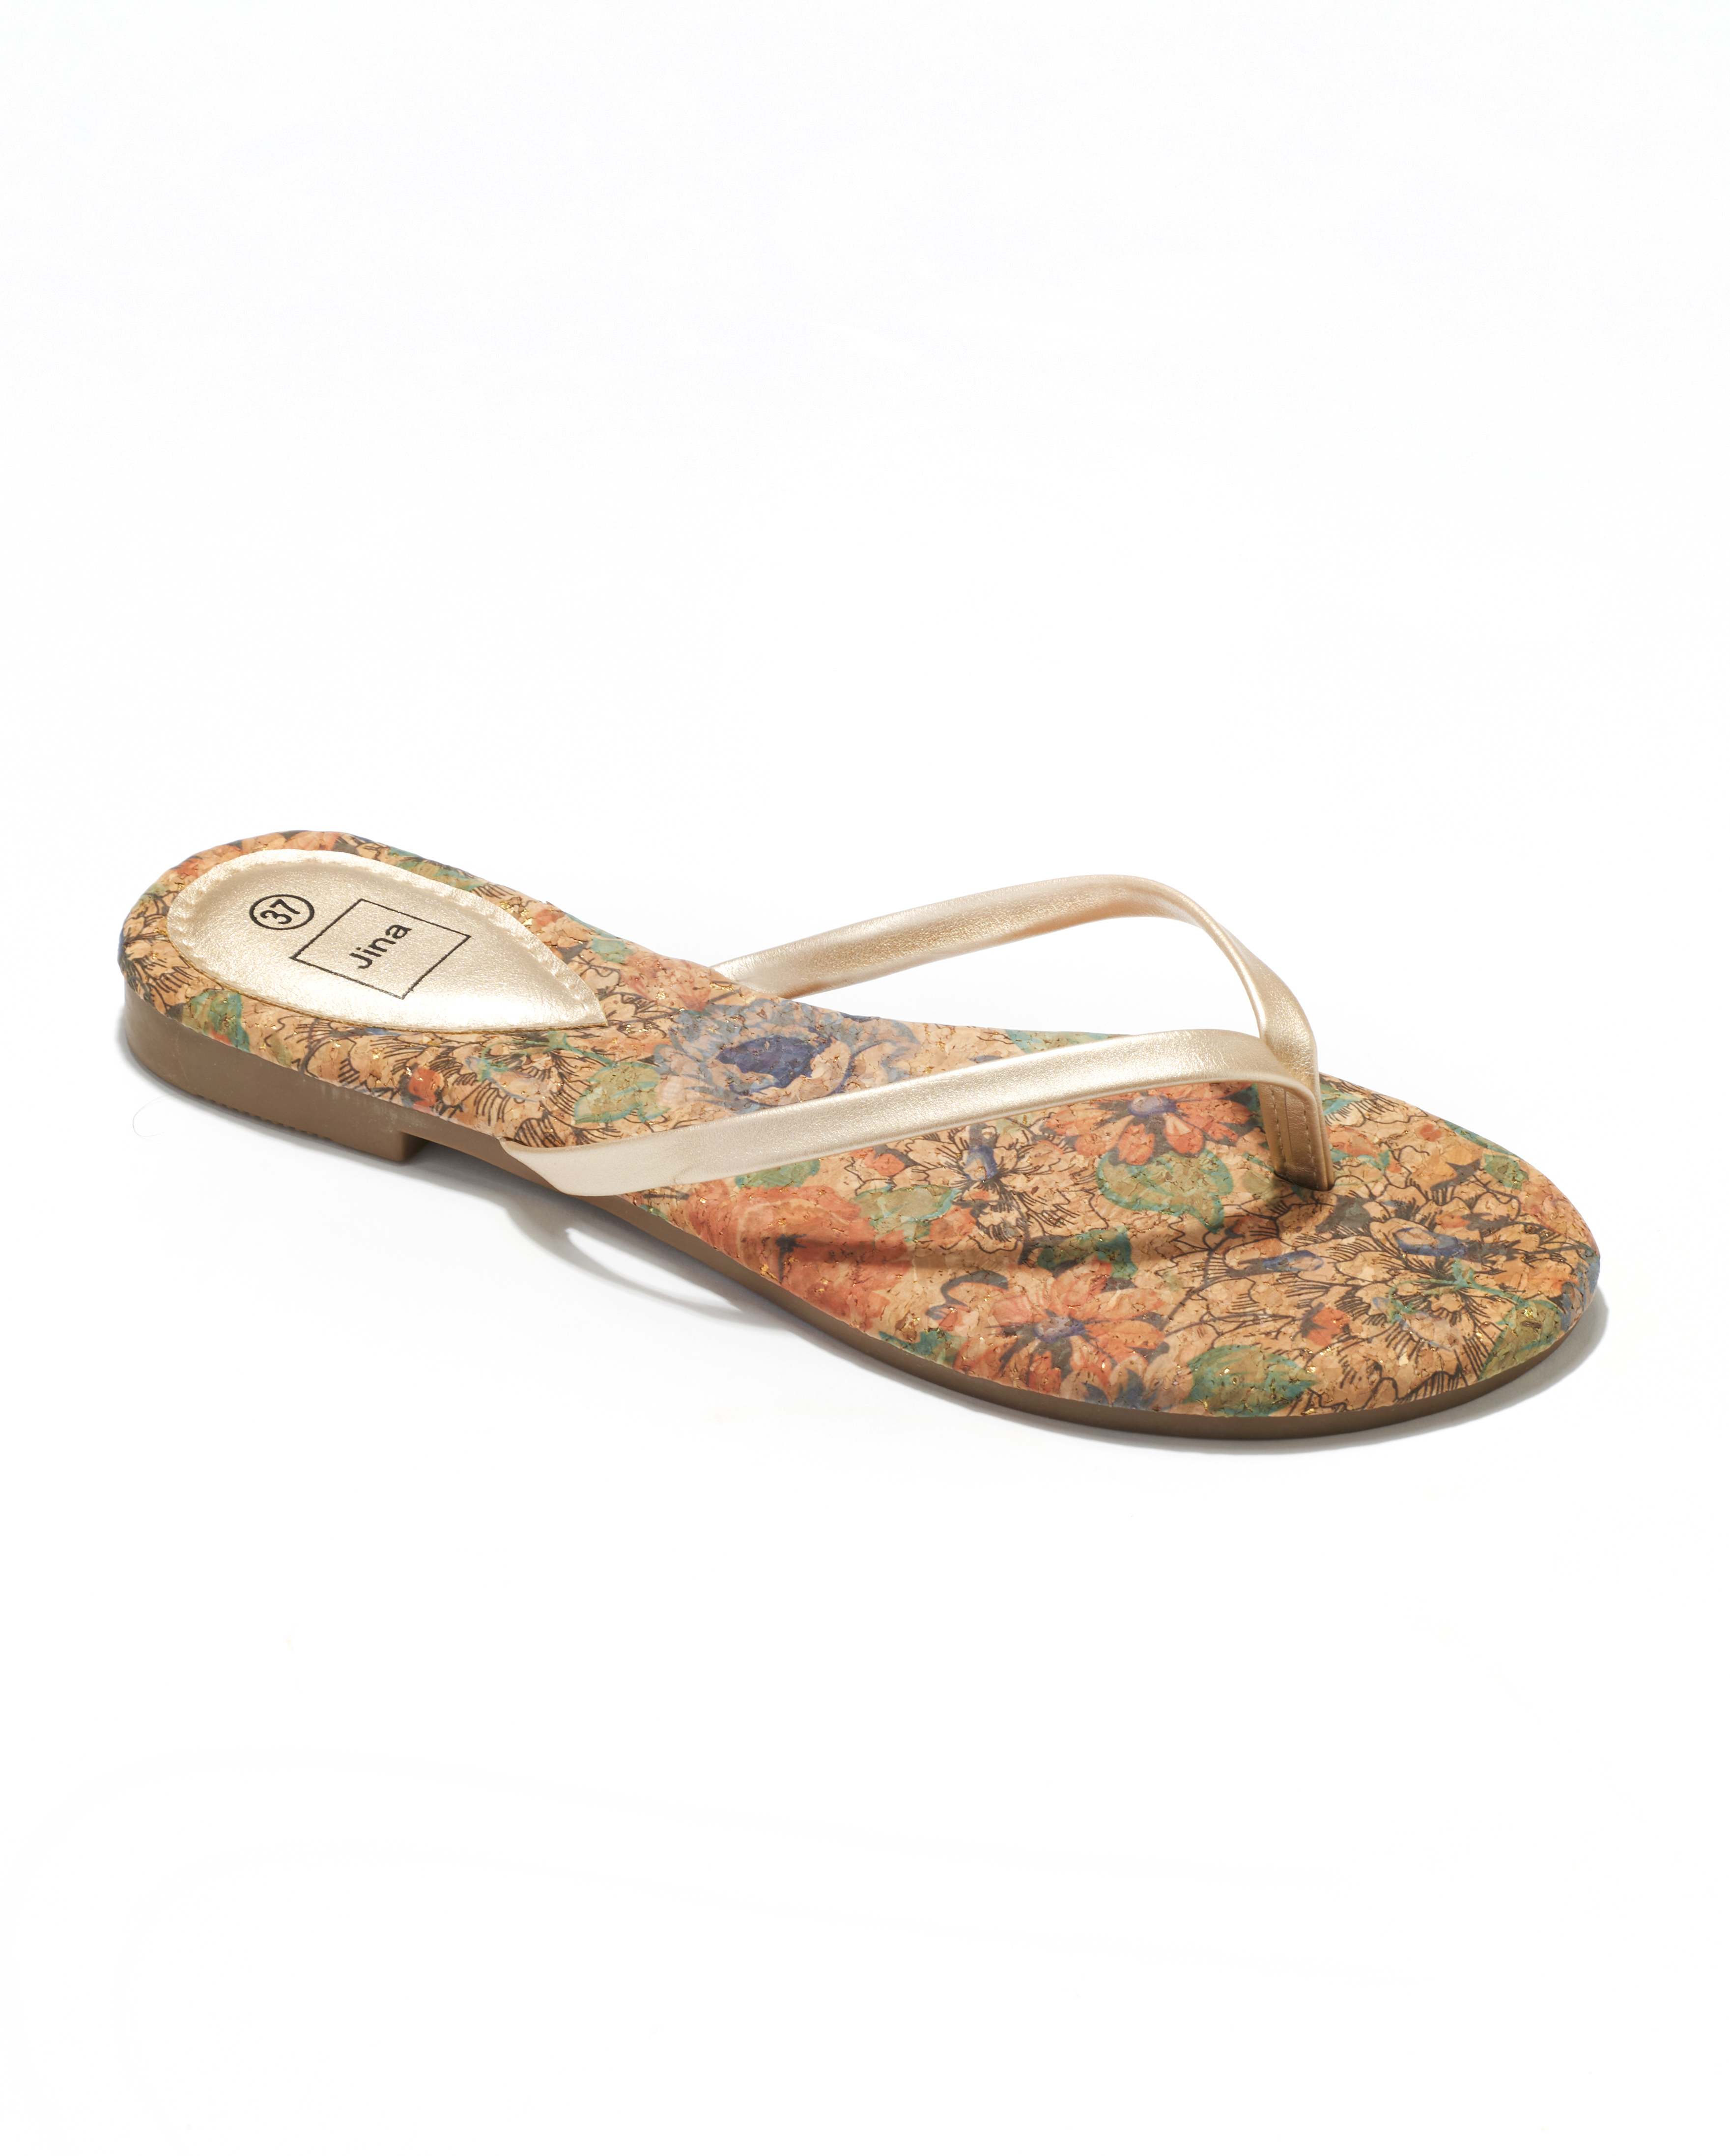 Mules Femme - Mule Plate Or Jina - Style 1 Zh P05